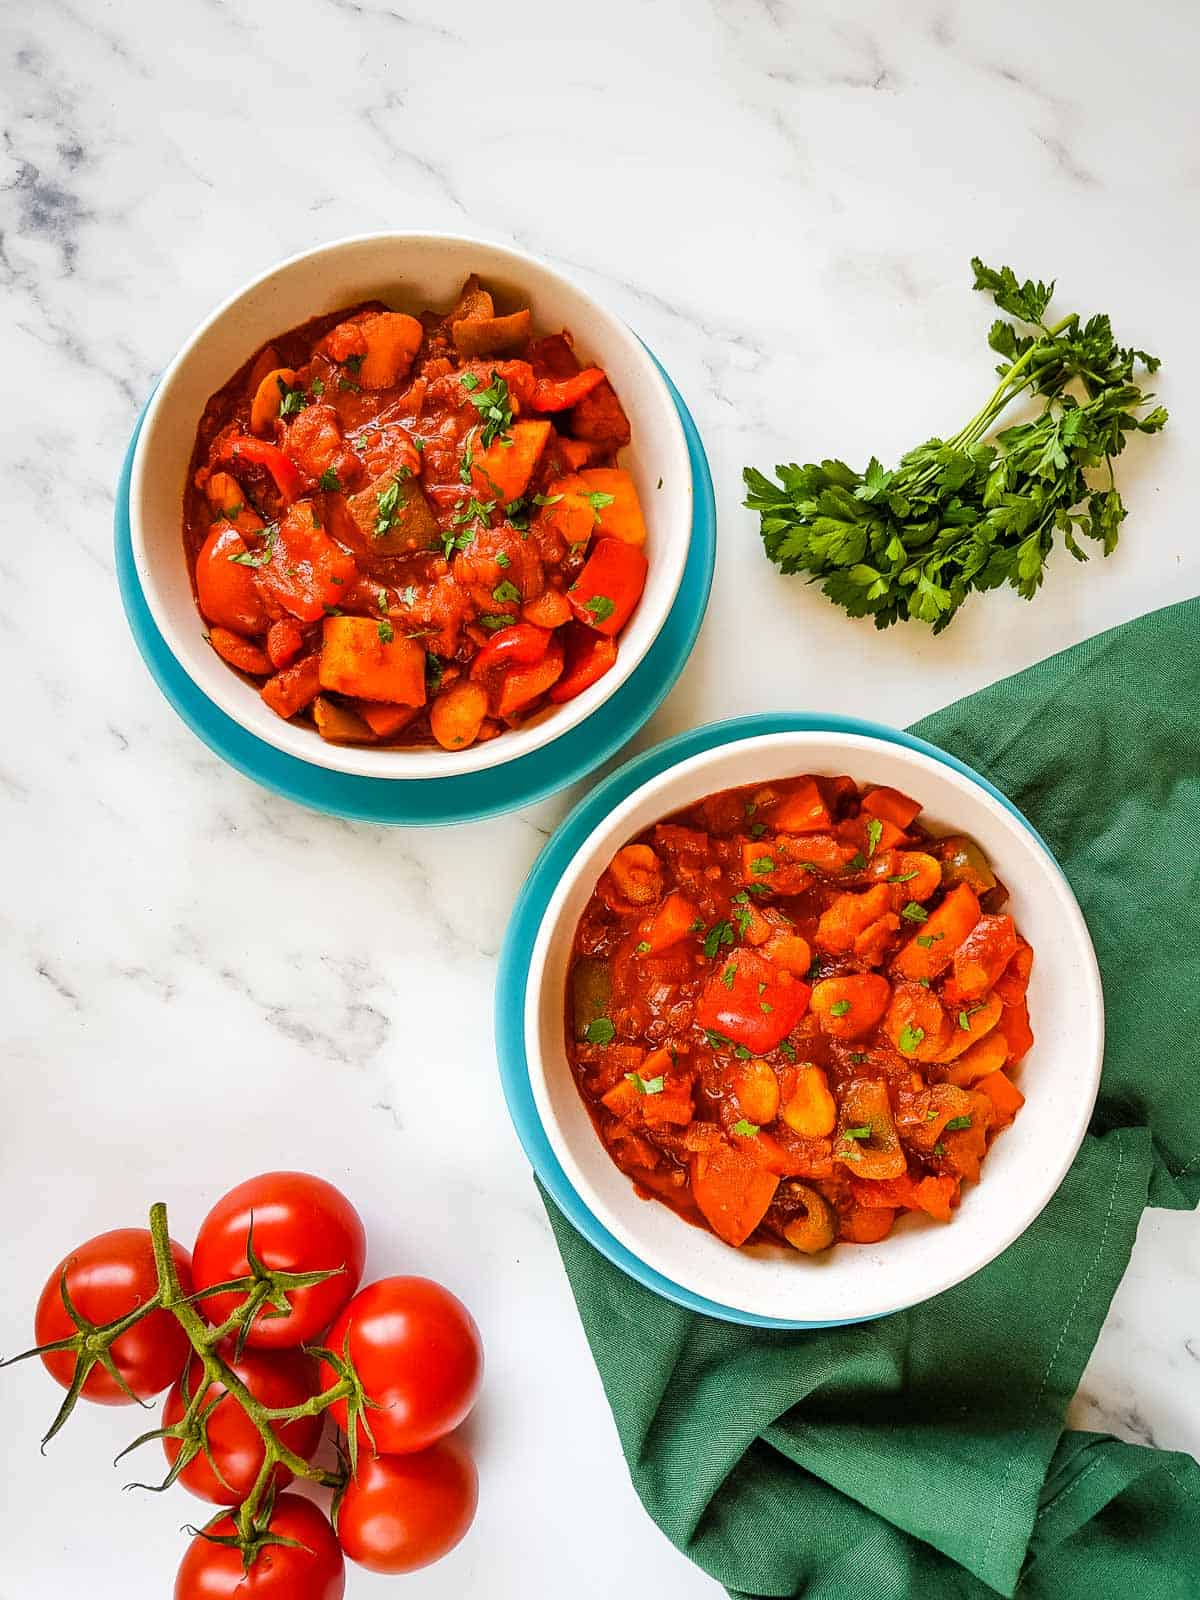 Vegetable goulash in bowls with parsley and tomatoes on the side.